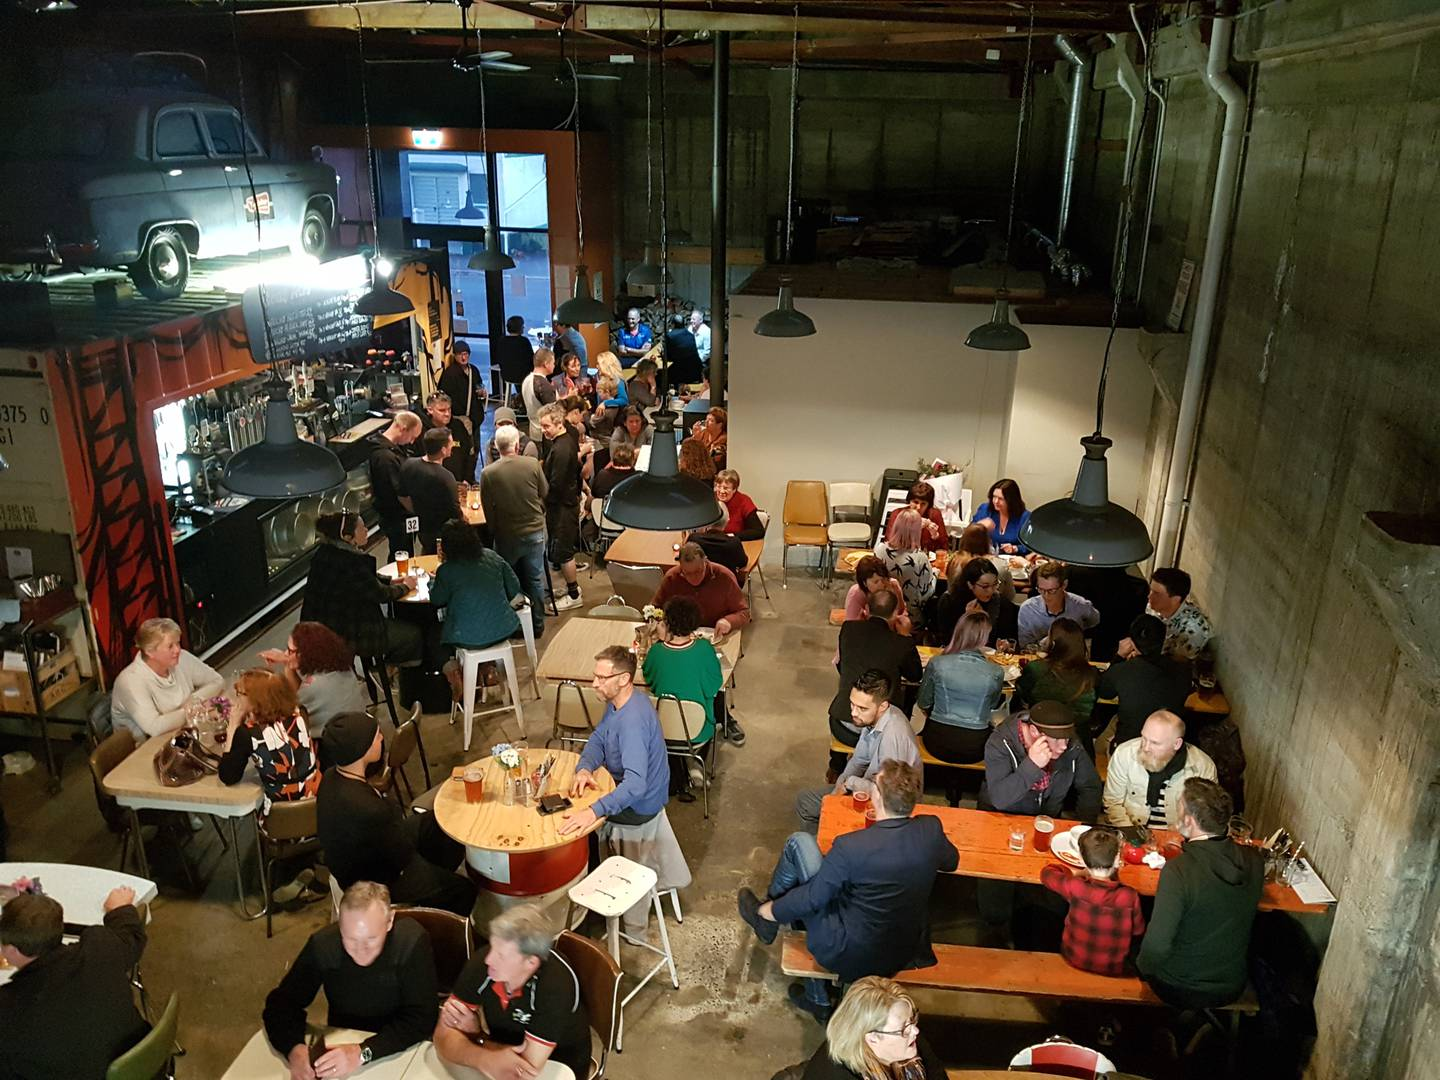 The Workshop Brewery is a great place to down tools Photo: Louis Jerard via NZH